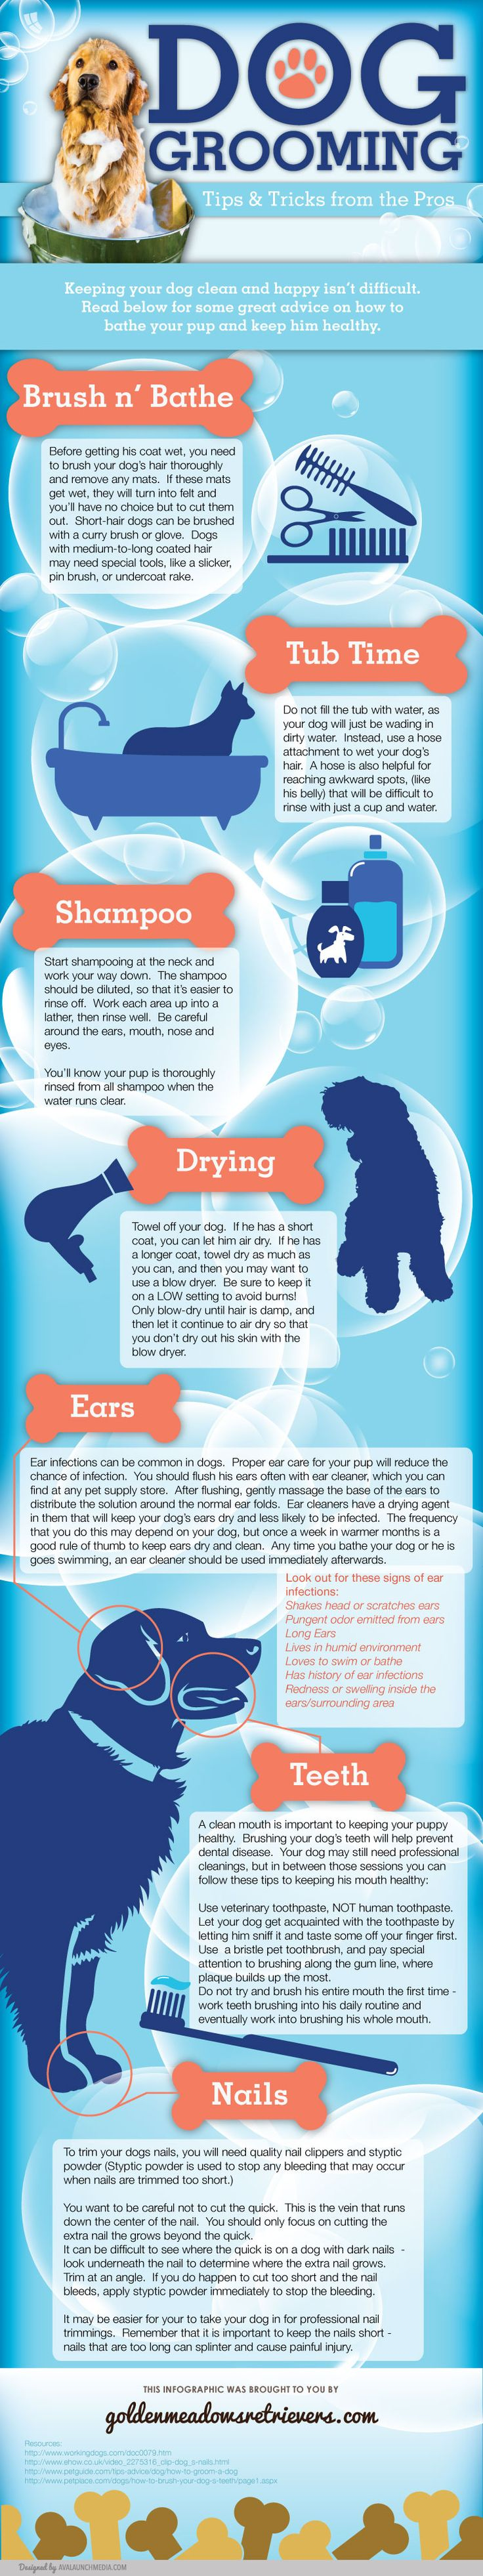 Dog Bathing Tips Tricks Tips and Tricks from the Pros for